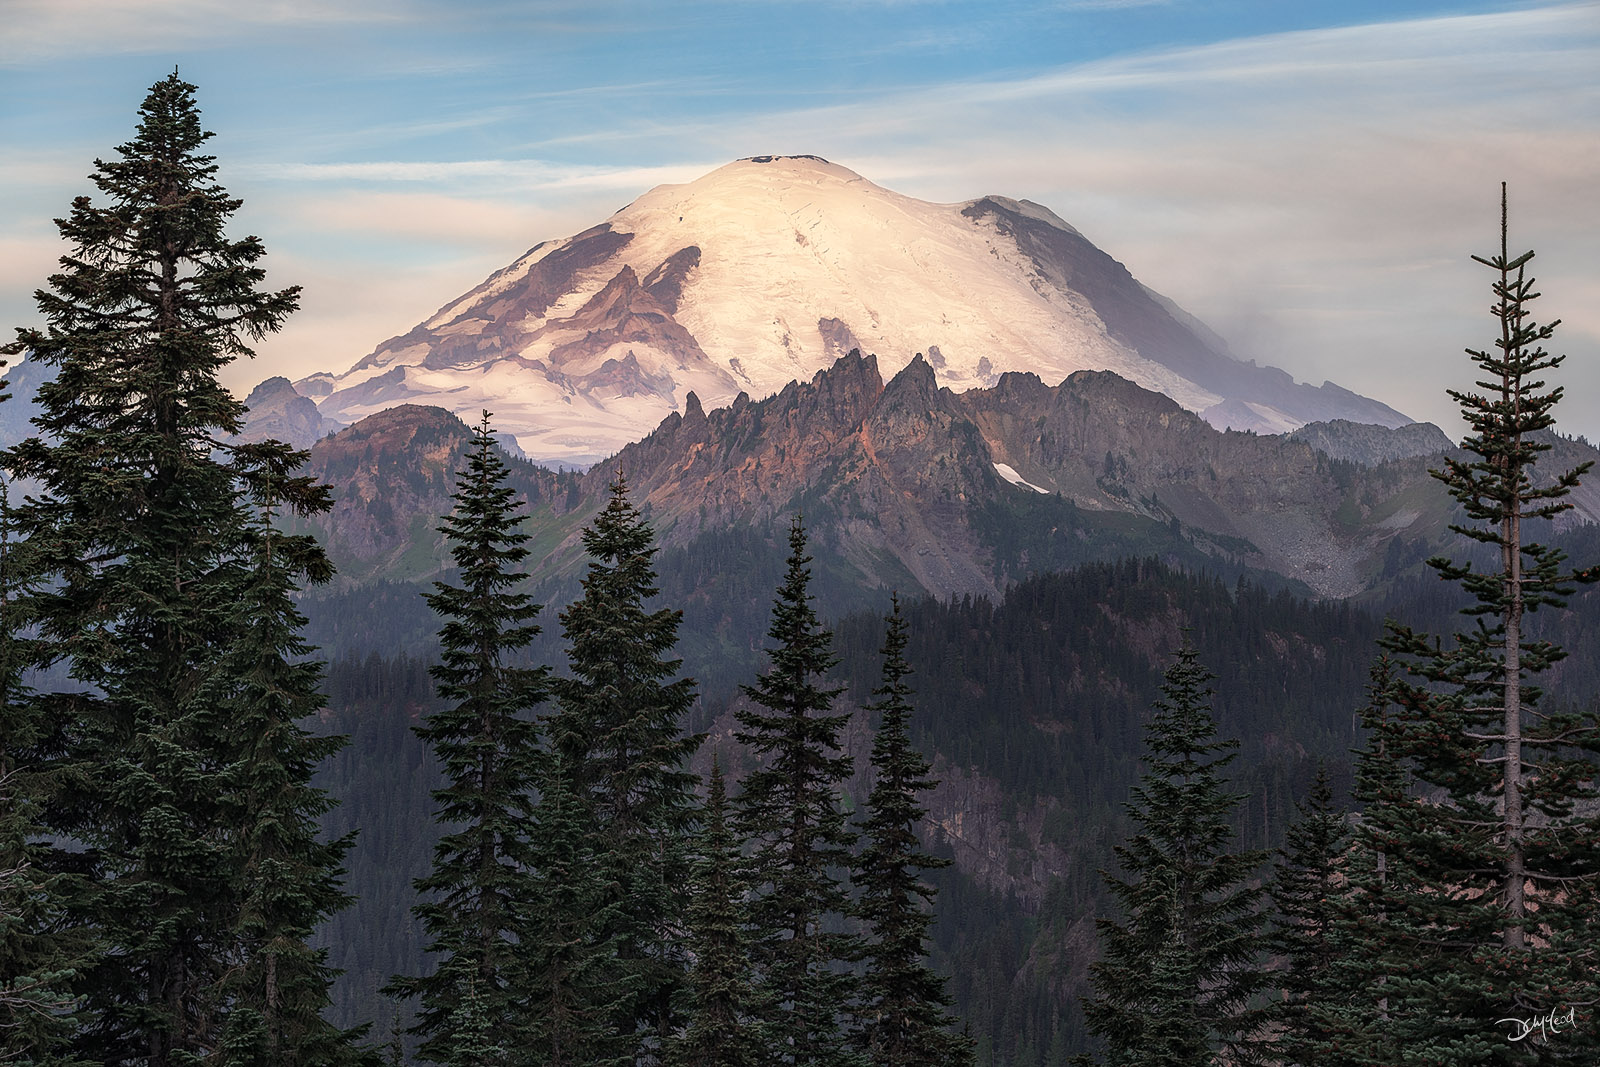 The snow-capped east face of Mount Rainier in Washington state viewed at sunrise through spruce trees in the summertime.